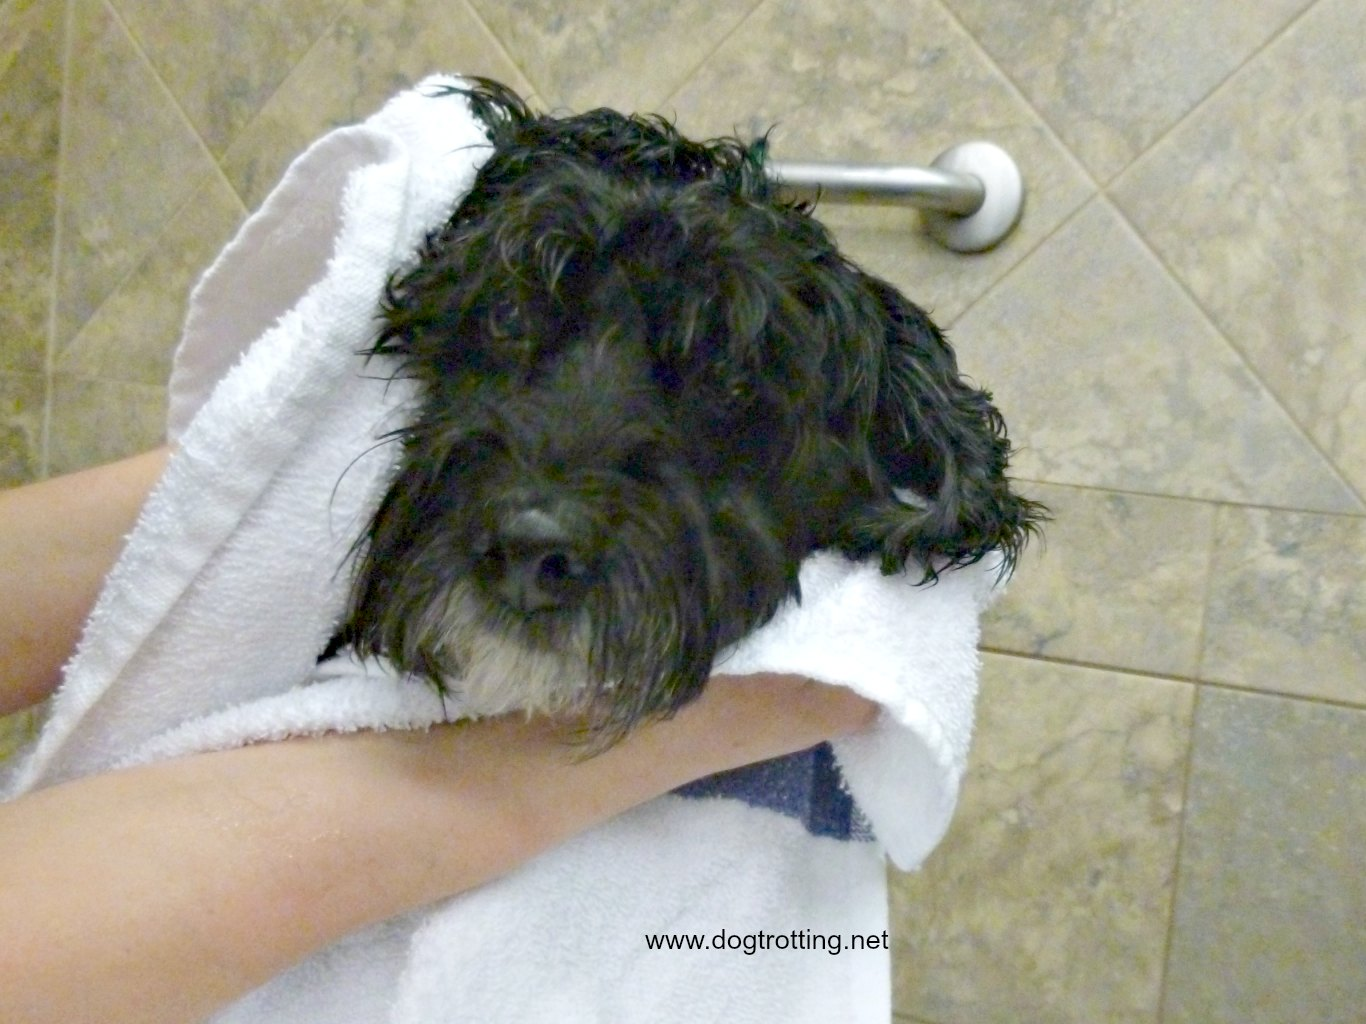 Dog Grooming: Get the tools. Eazee Brush Review